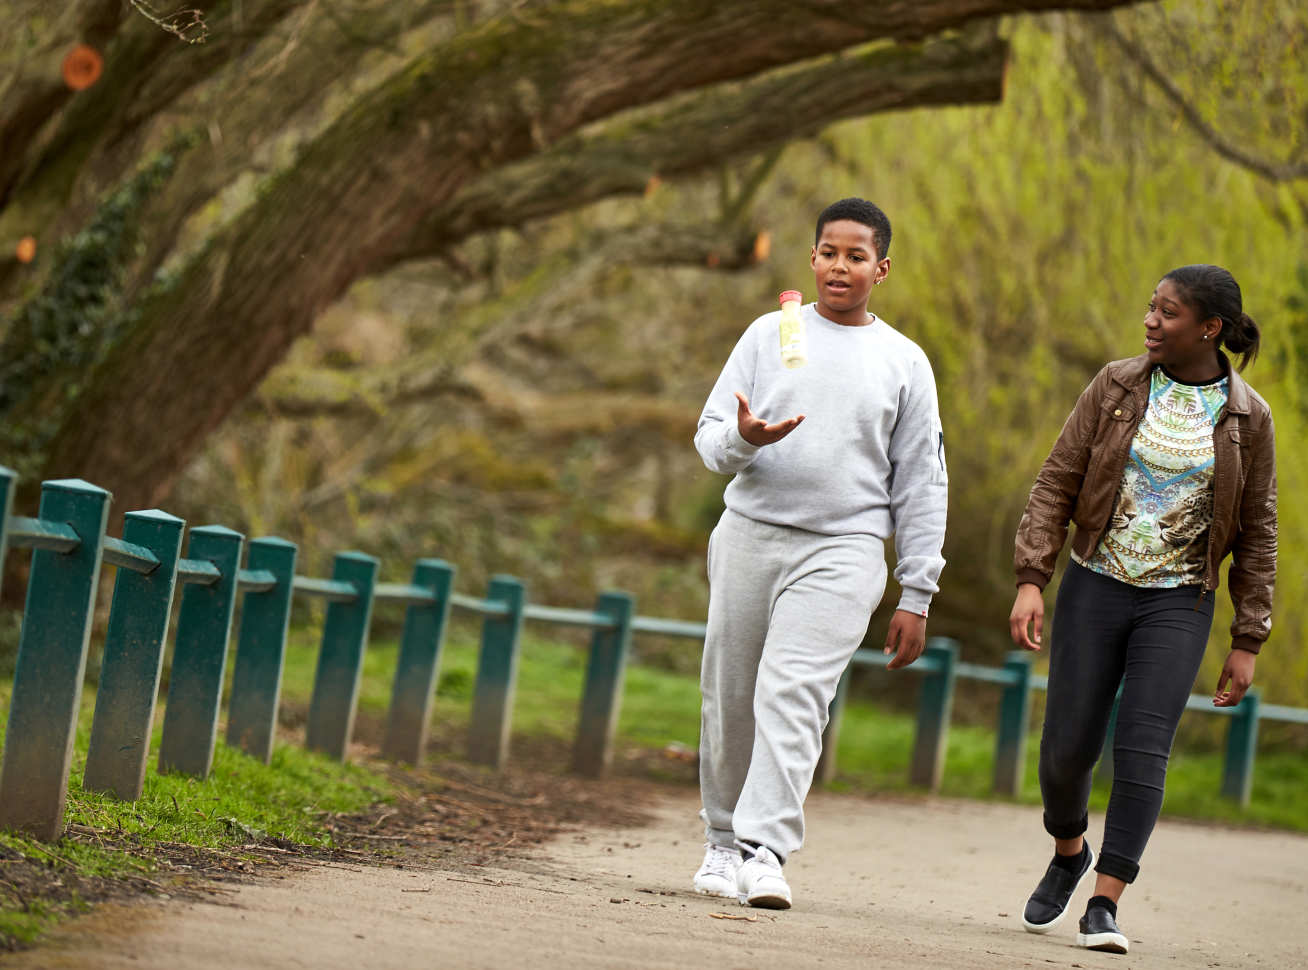 An overweight young man walks in a park